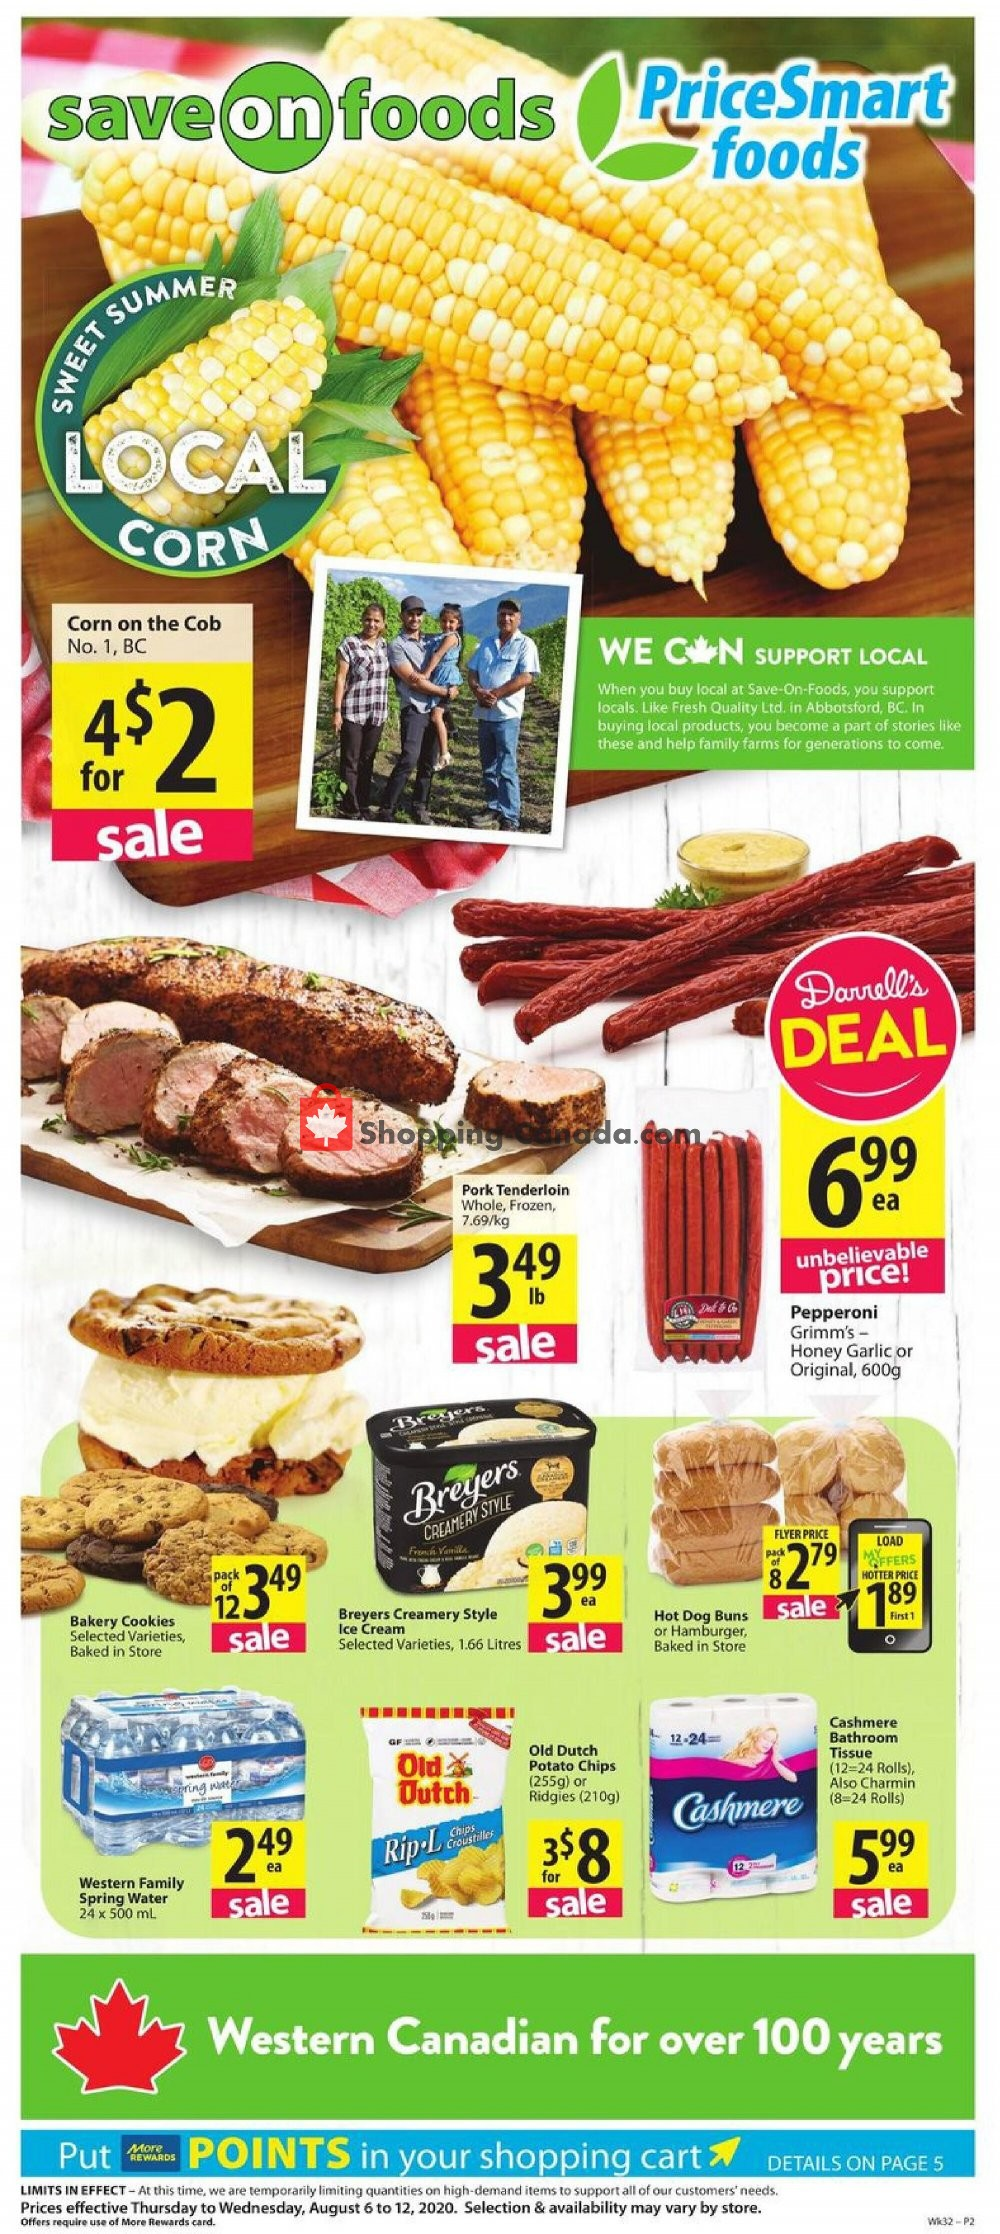 Flyer PriceSmart Foods Canada - from Thursday August 6, 2020 to Wednesday August 12, 2020